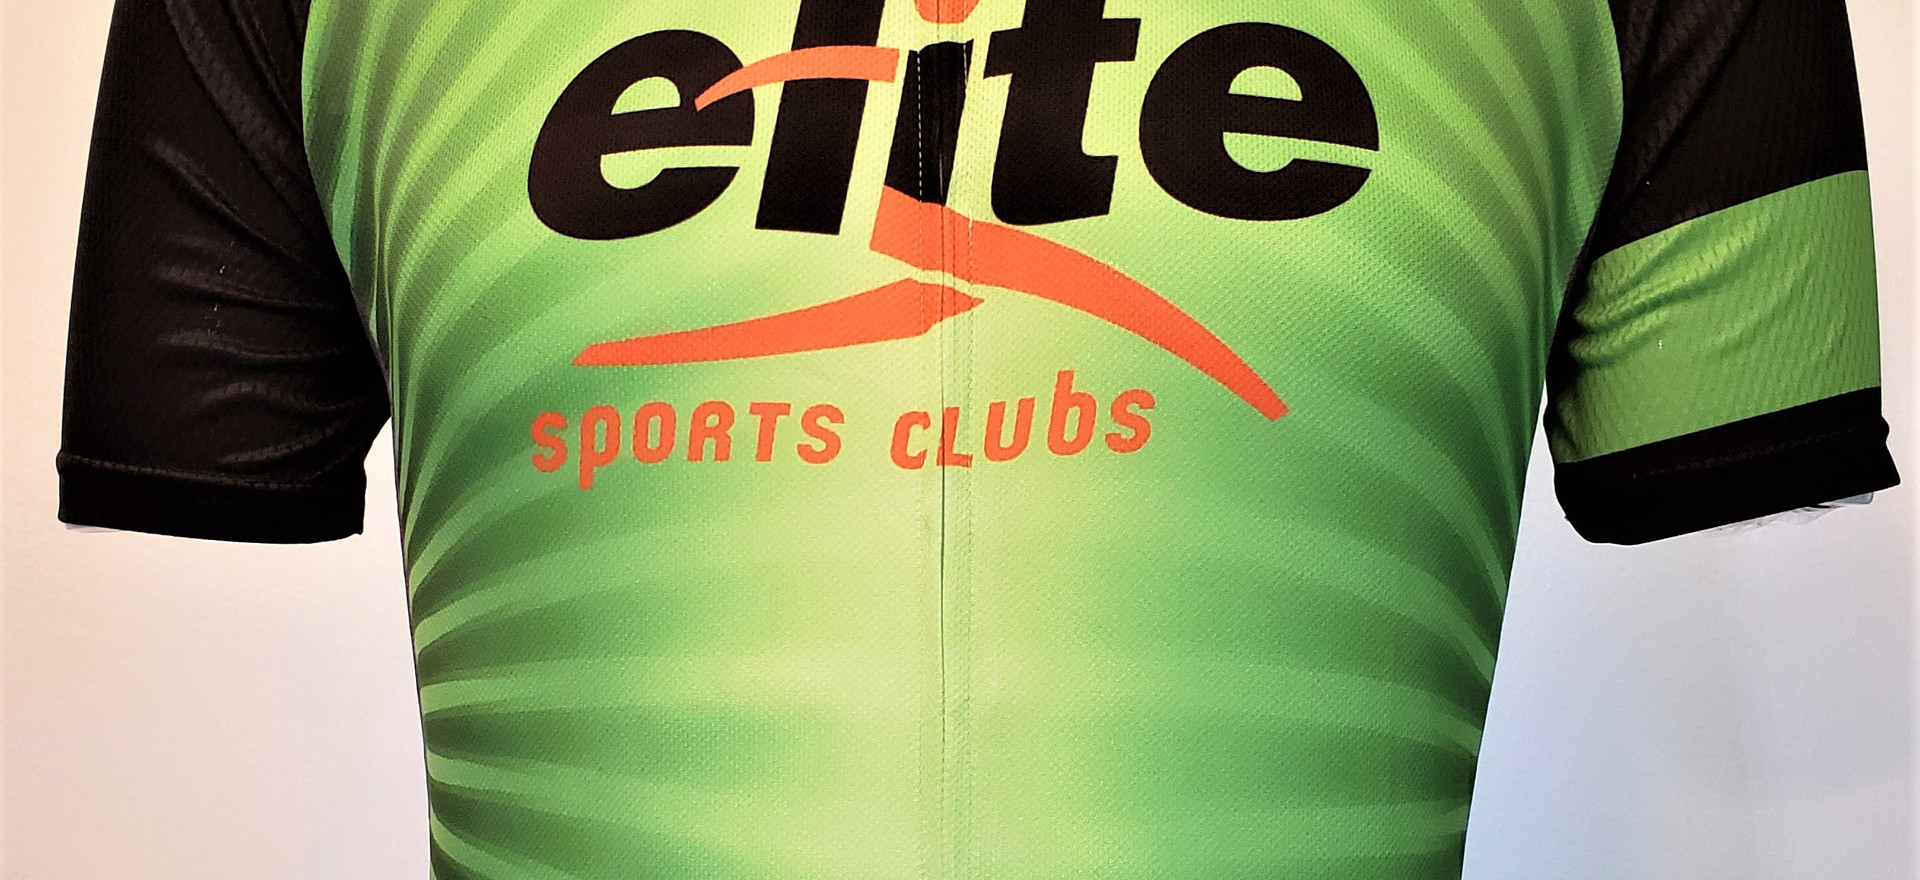 Elite sports clubs custom cycling jersey